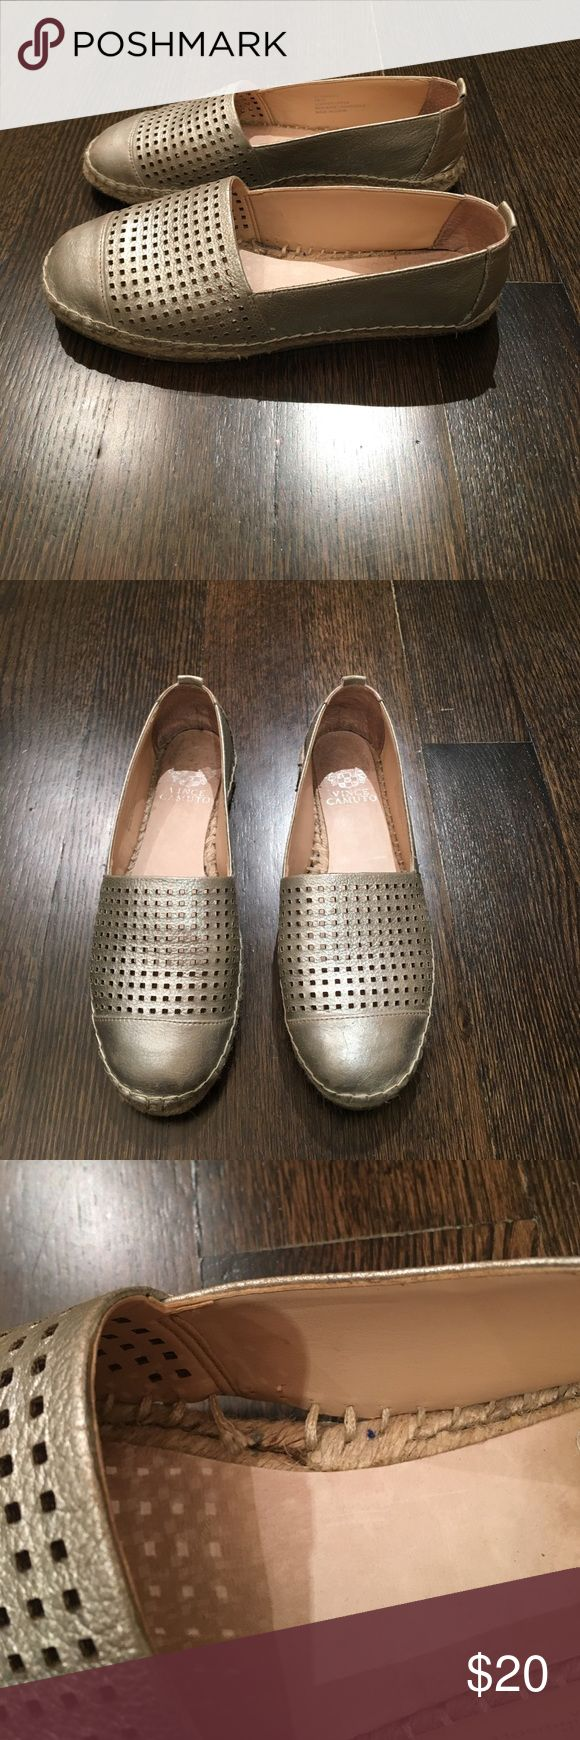 Vince Camuto espadrilles Silver espadrilles with perforated tops. Lightly used but left shoe lost stitches and needs to be fixed Vince Camuto Shoes Espadrilles